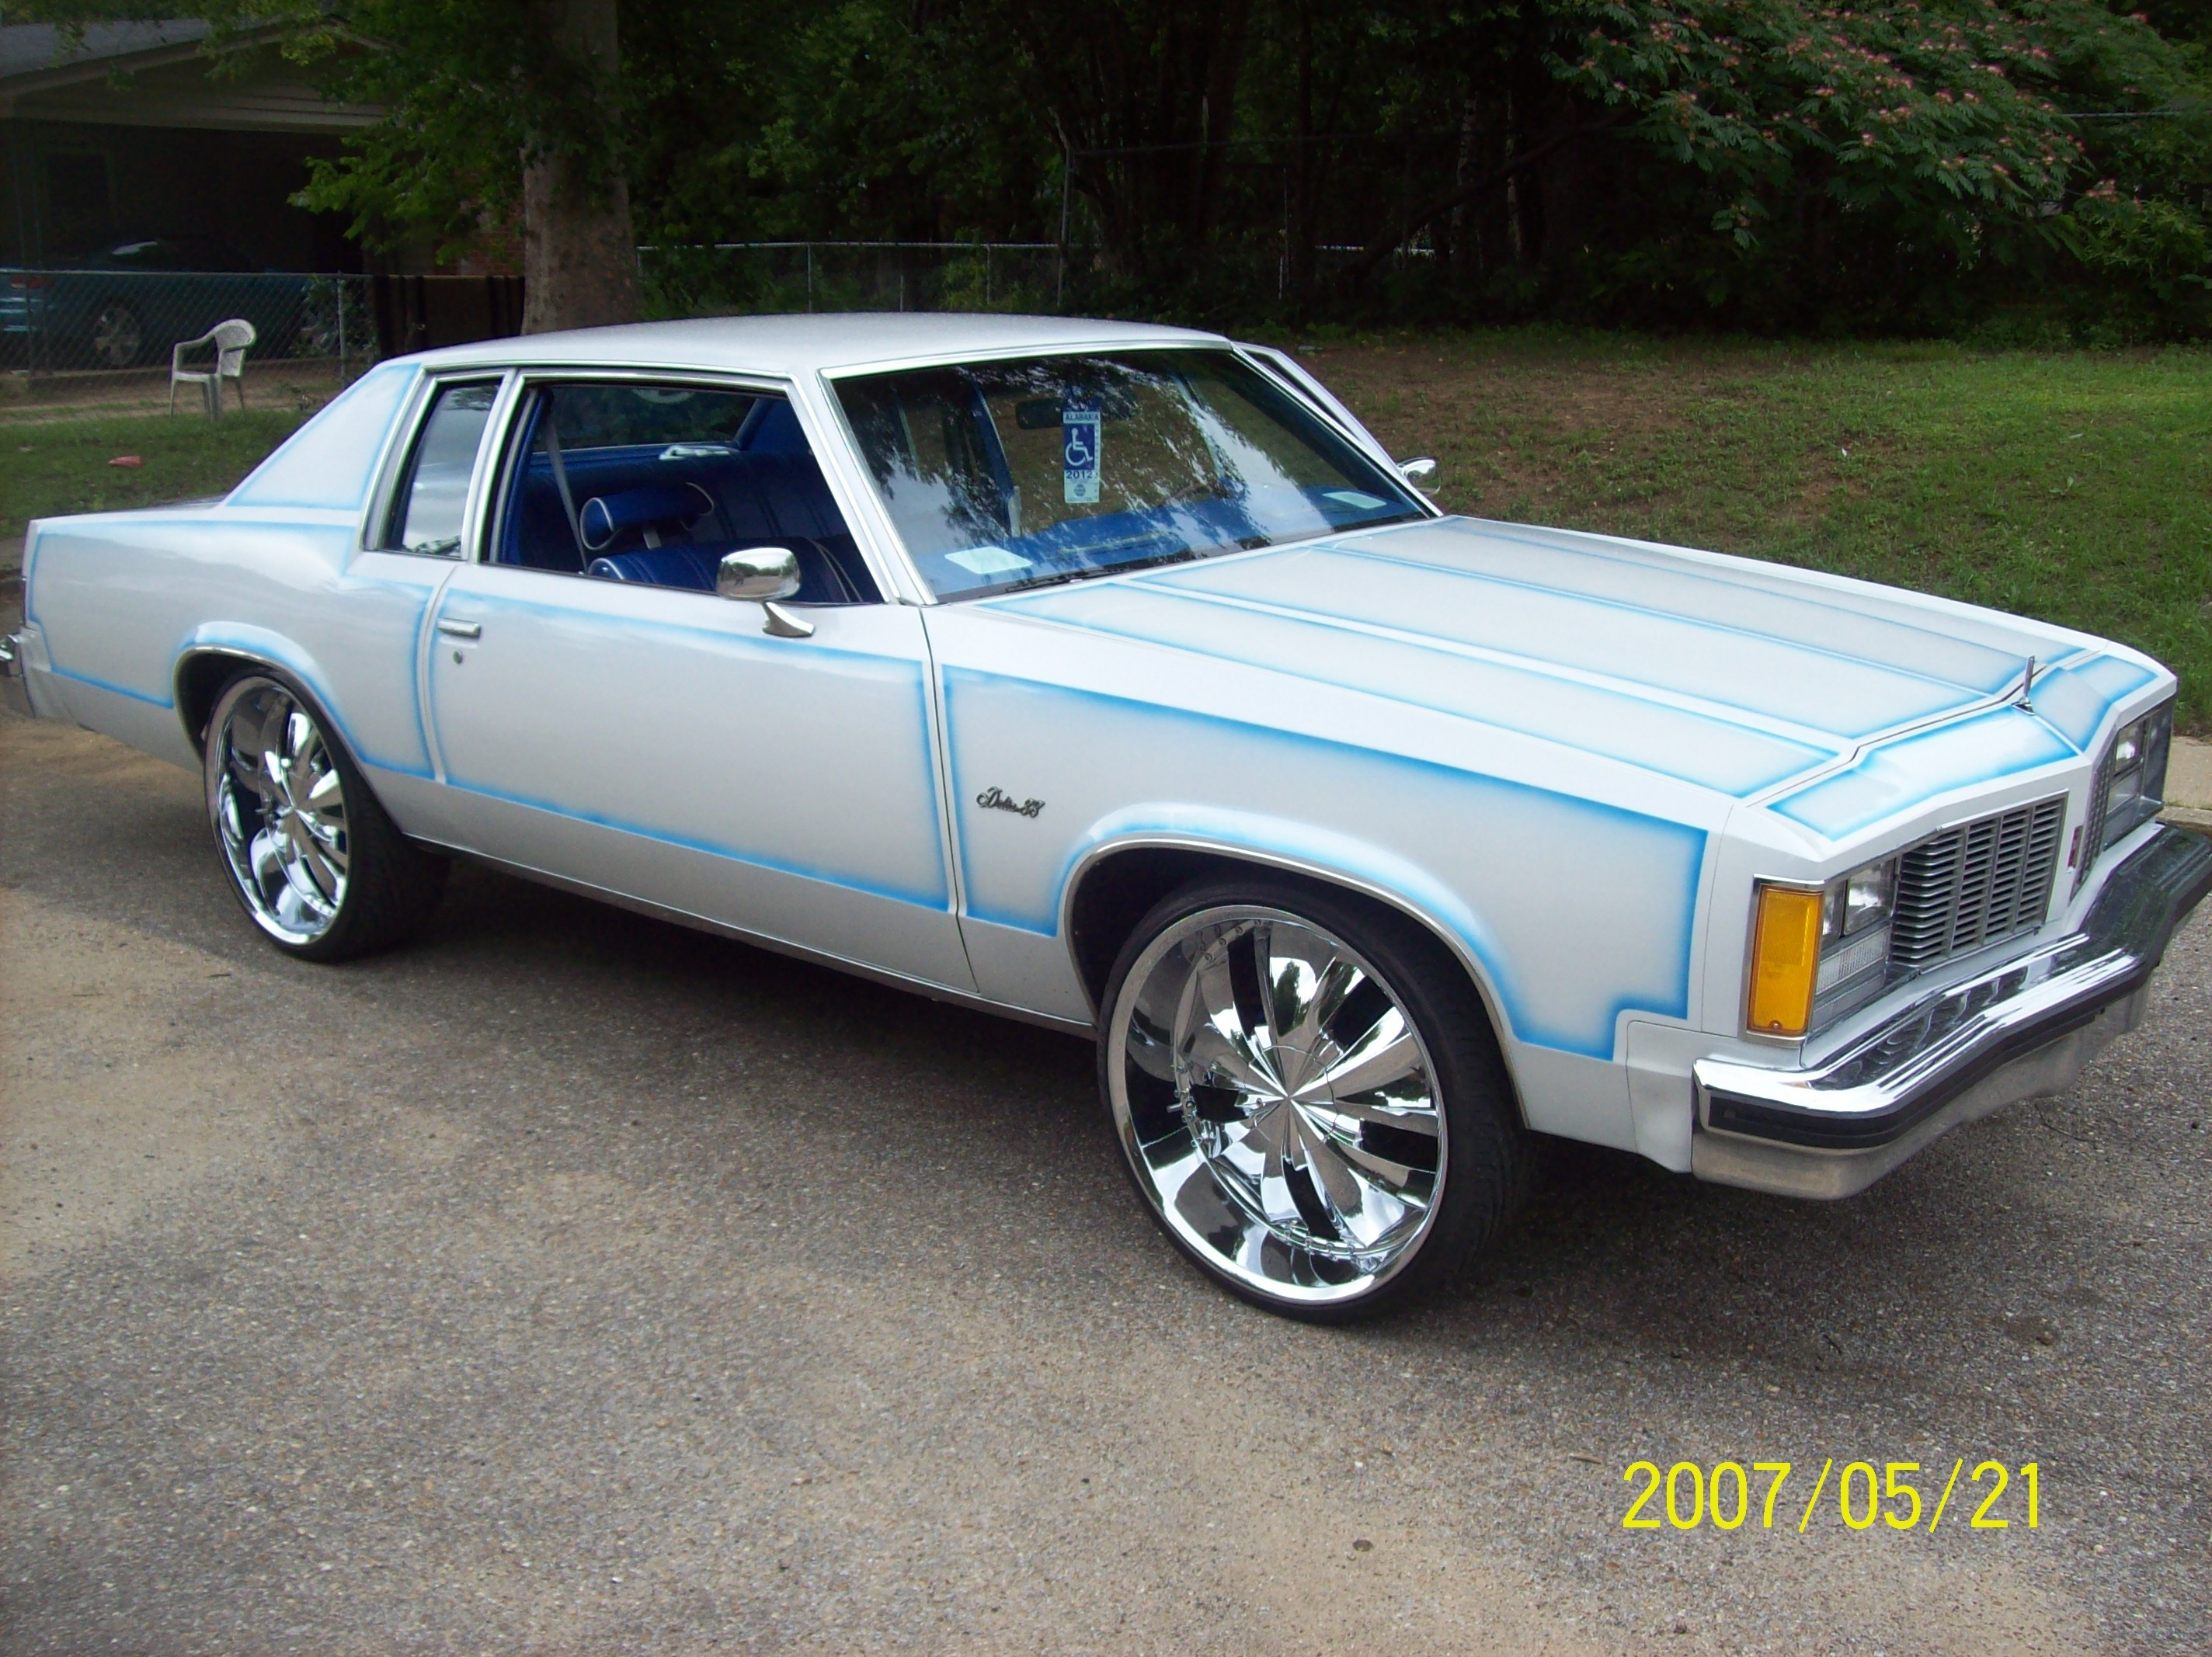 1979 Oldsmobile Delta 88 - View all 1979 Oldsmobile Delta 88 at ...